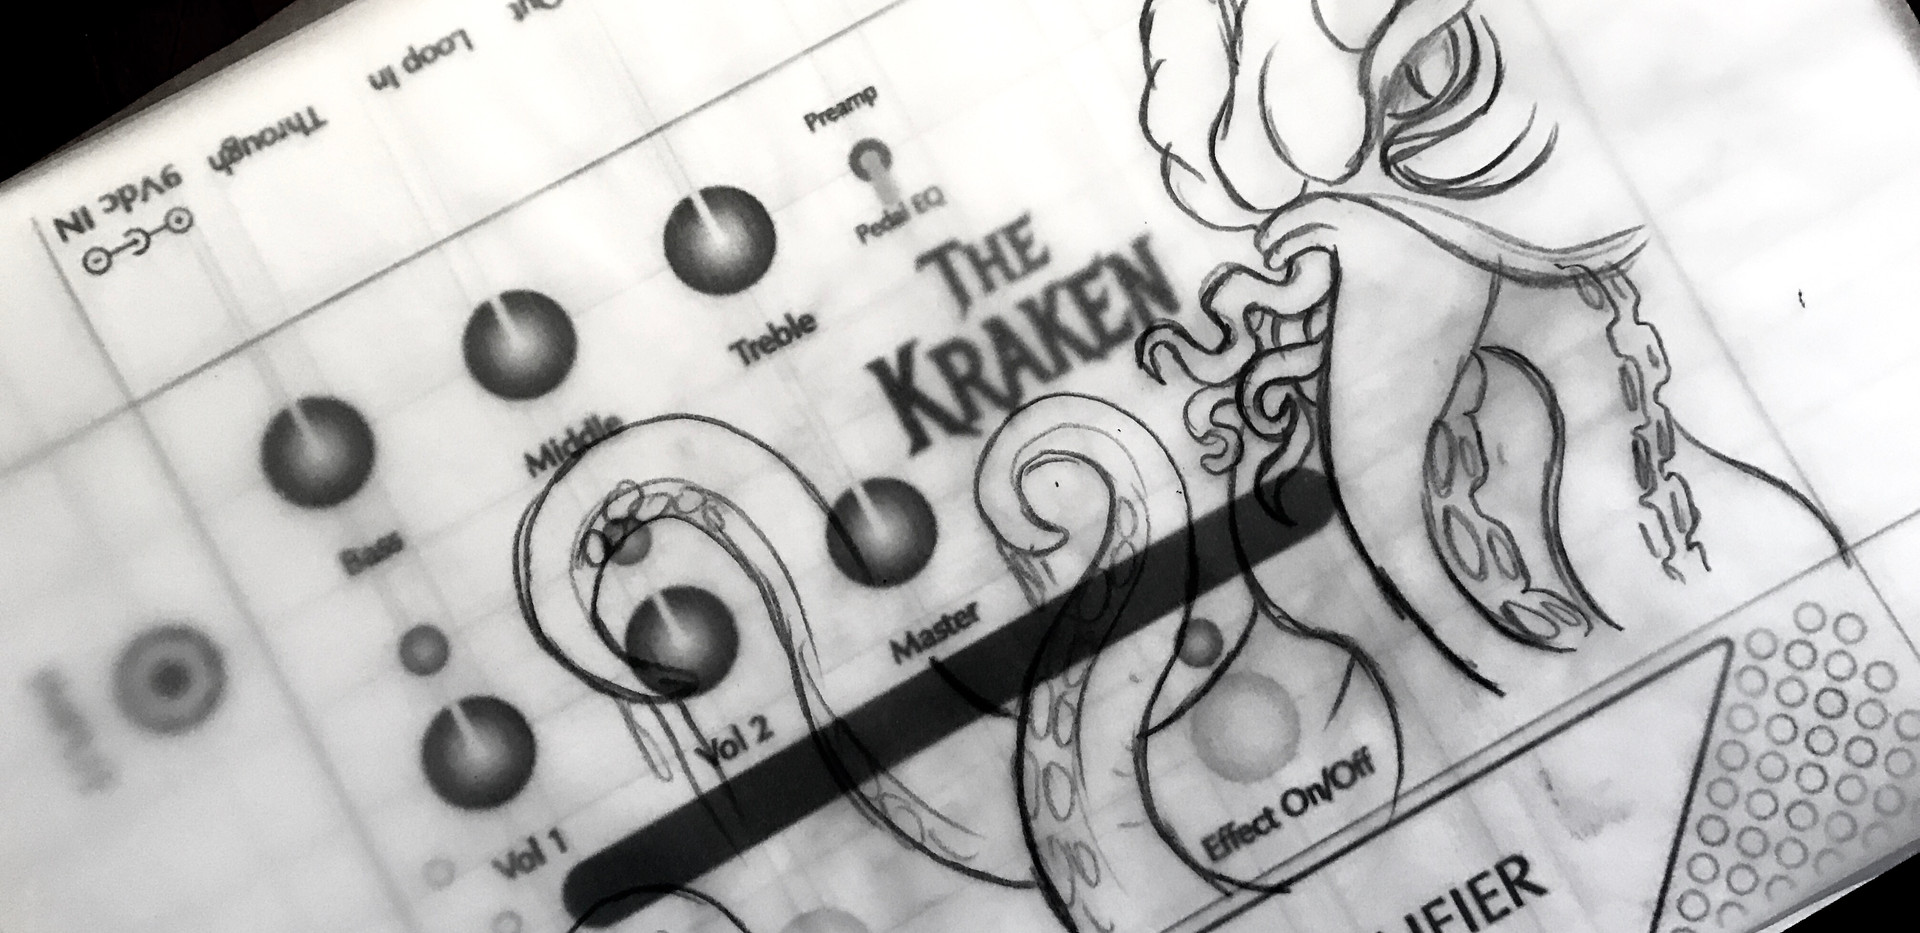 Victory V4 The Kraken Pedal Artwork In Progress at Early Stage